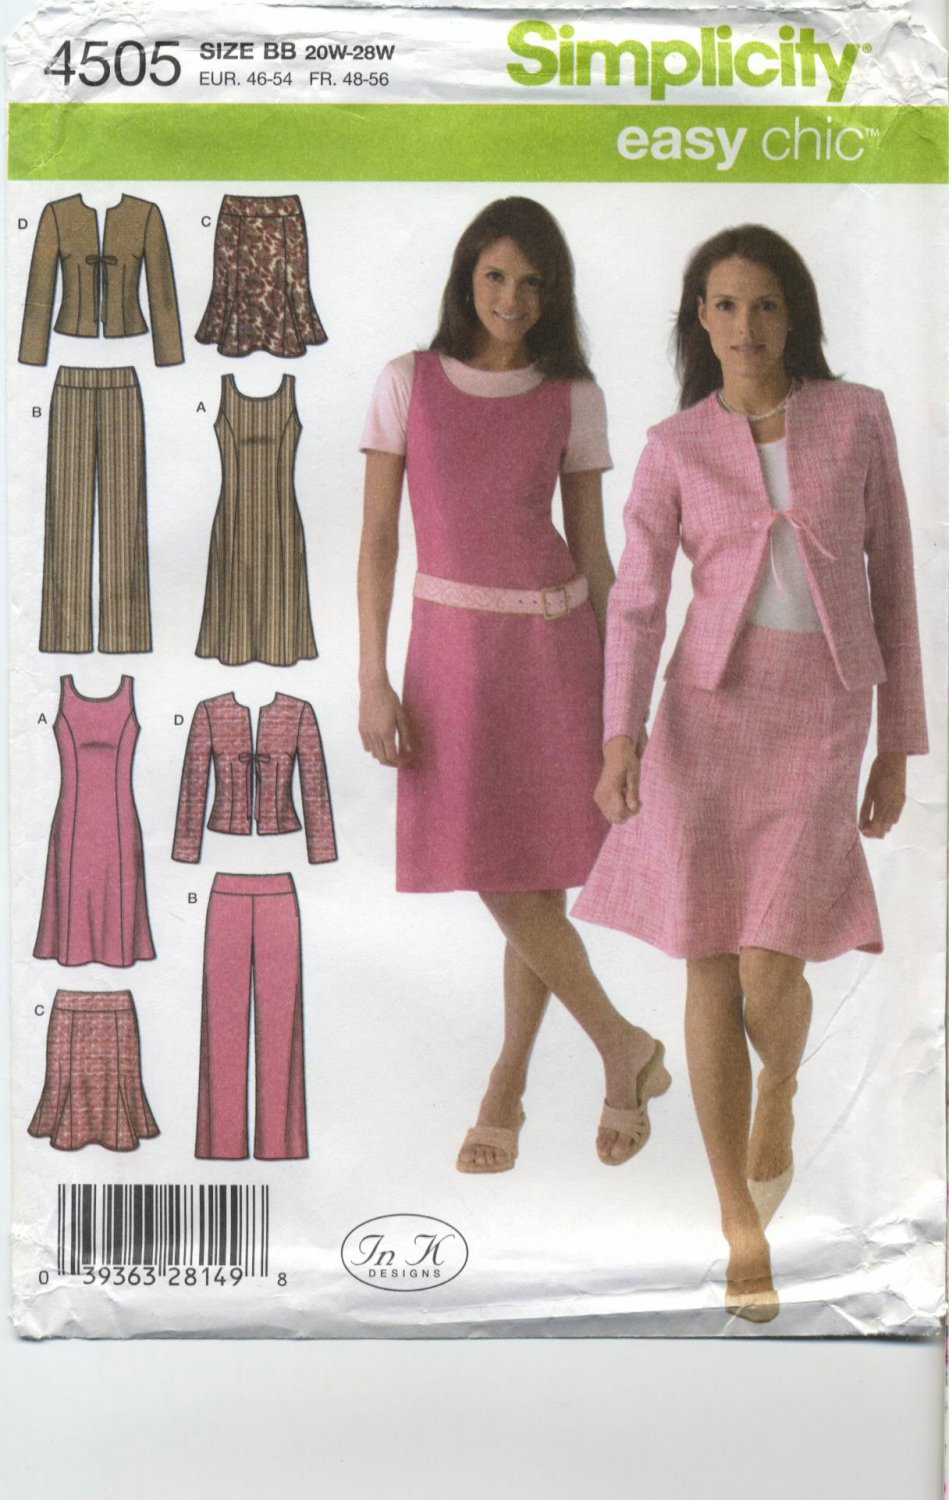 Simplicity 4505 Jumper, Pants, Skirt & Jacket Sewing Pattern Women's 20W 22W 24W 26W 28W